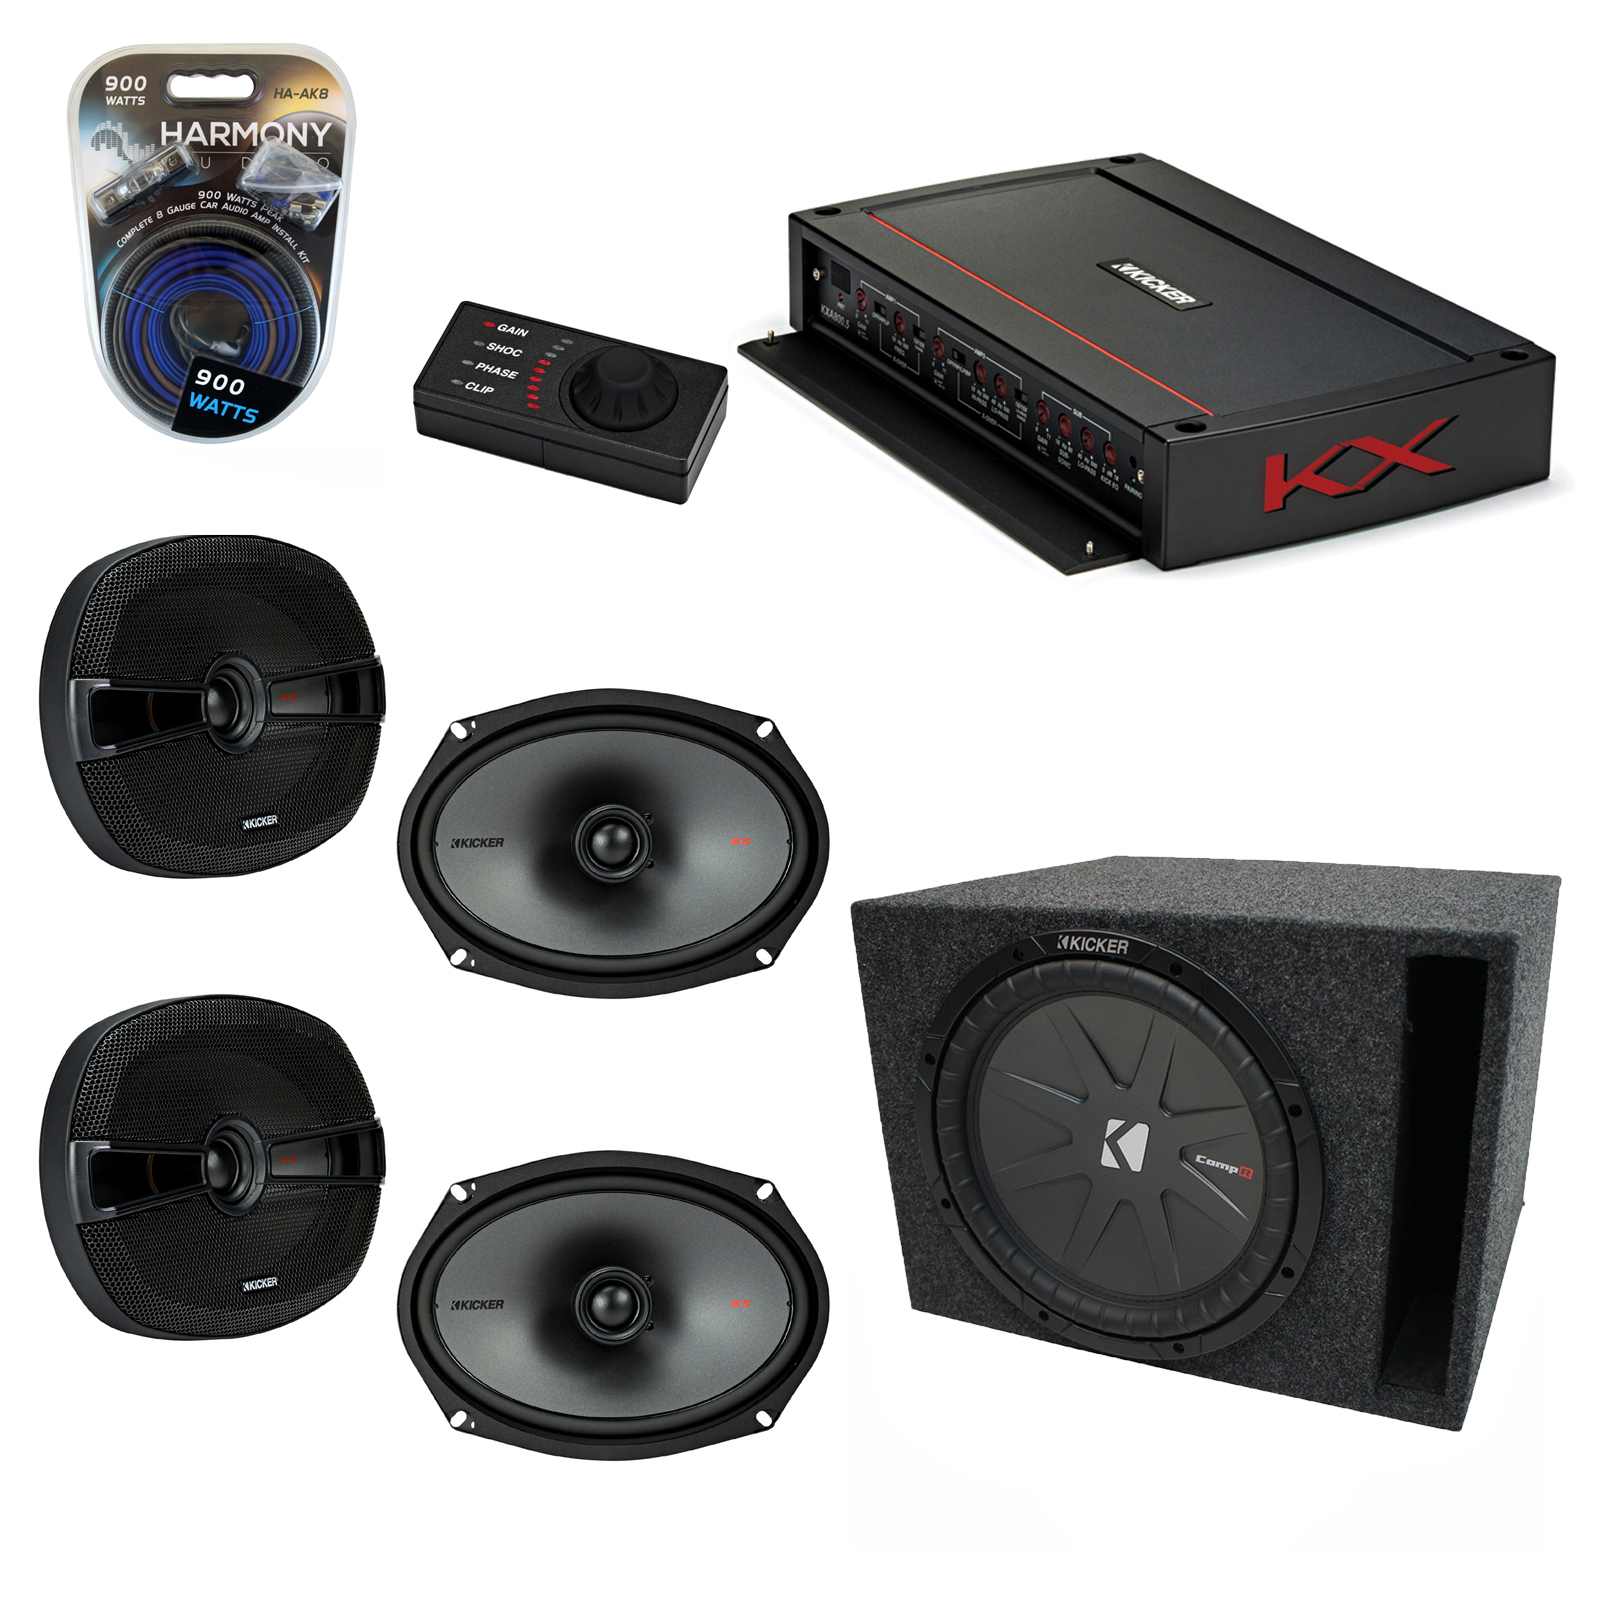 "Kicker Car Audio 5 Channel Amplifer Bundle with 10"" 400W RMS 4-Ohm DVC Car Subwoofer, KS Series 6x9"" Full Range Speakers (2), & Accessories (6 Items)"